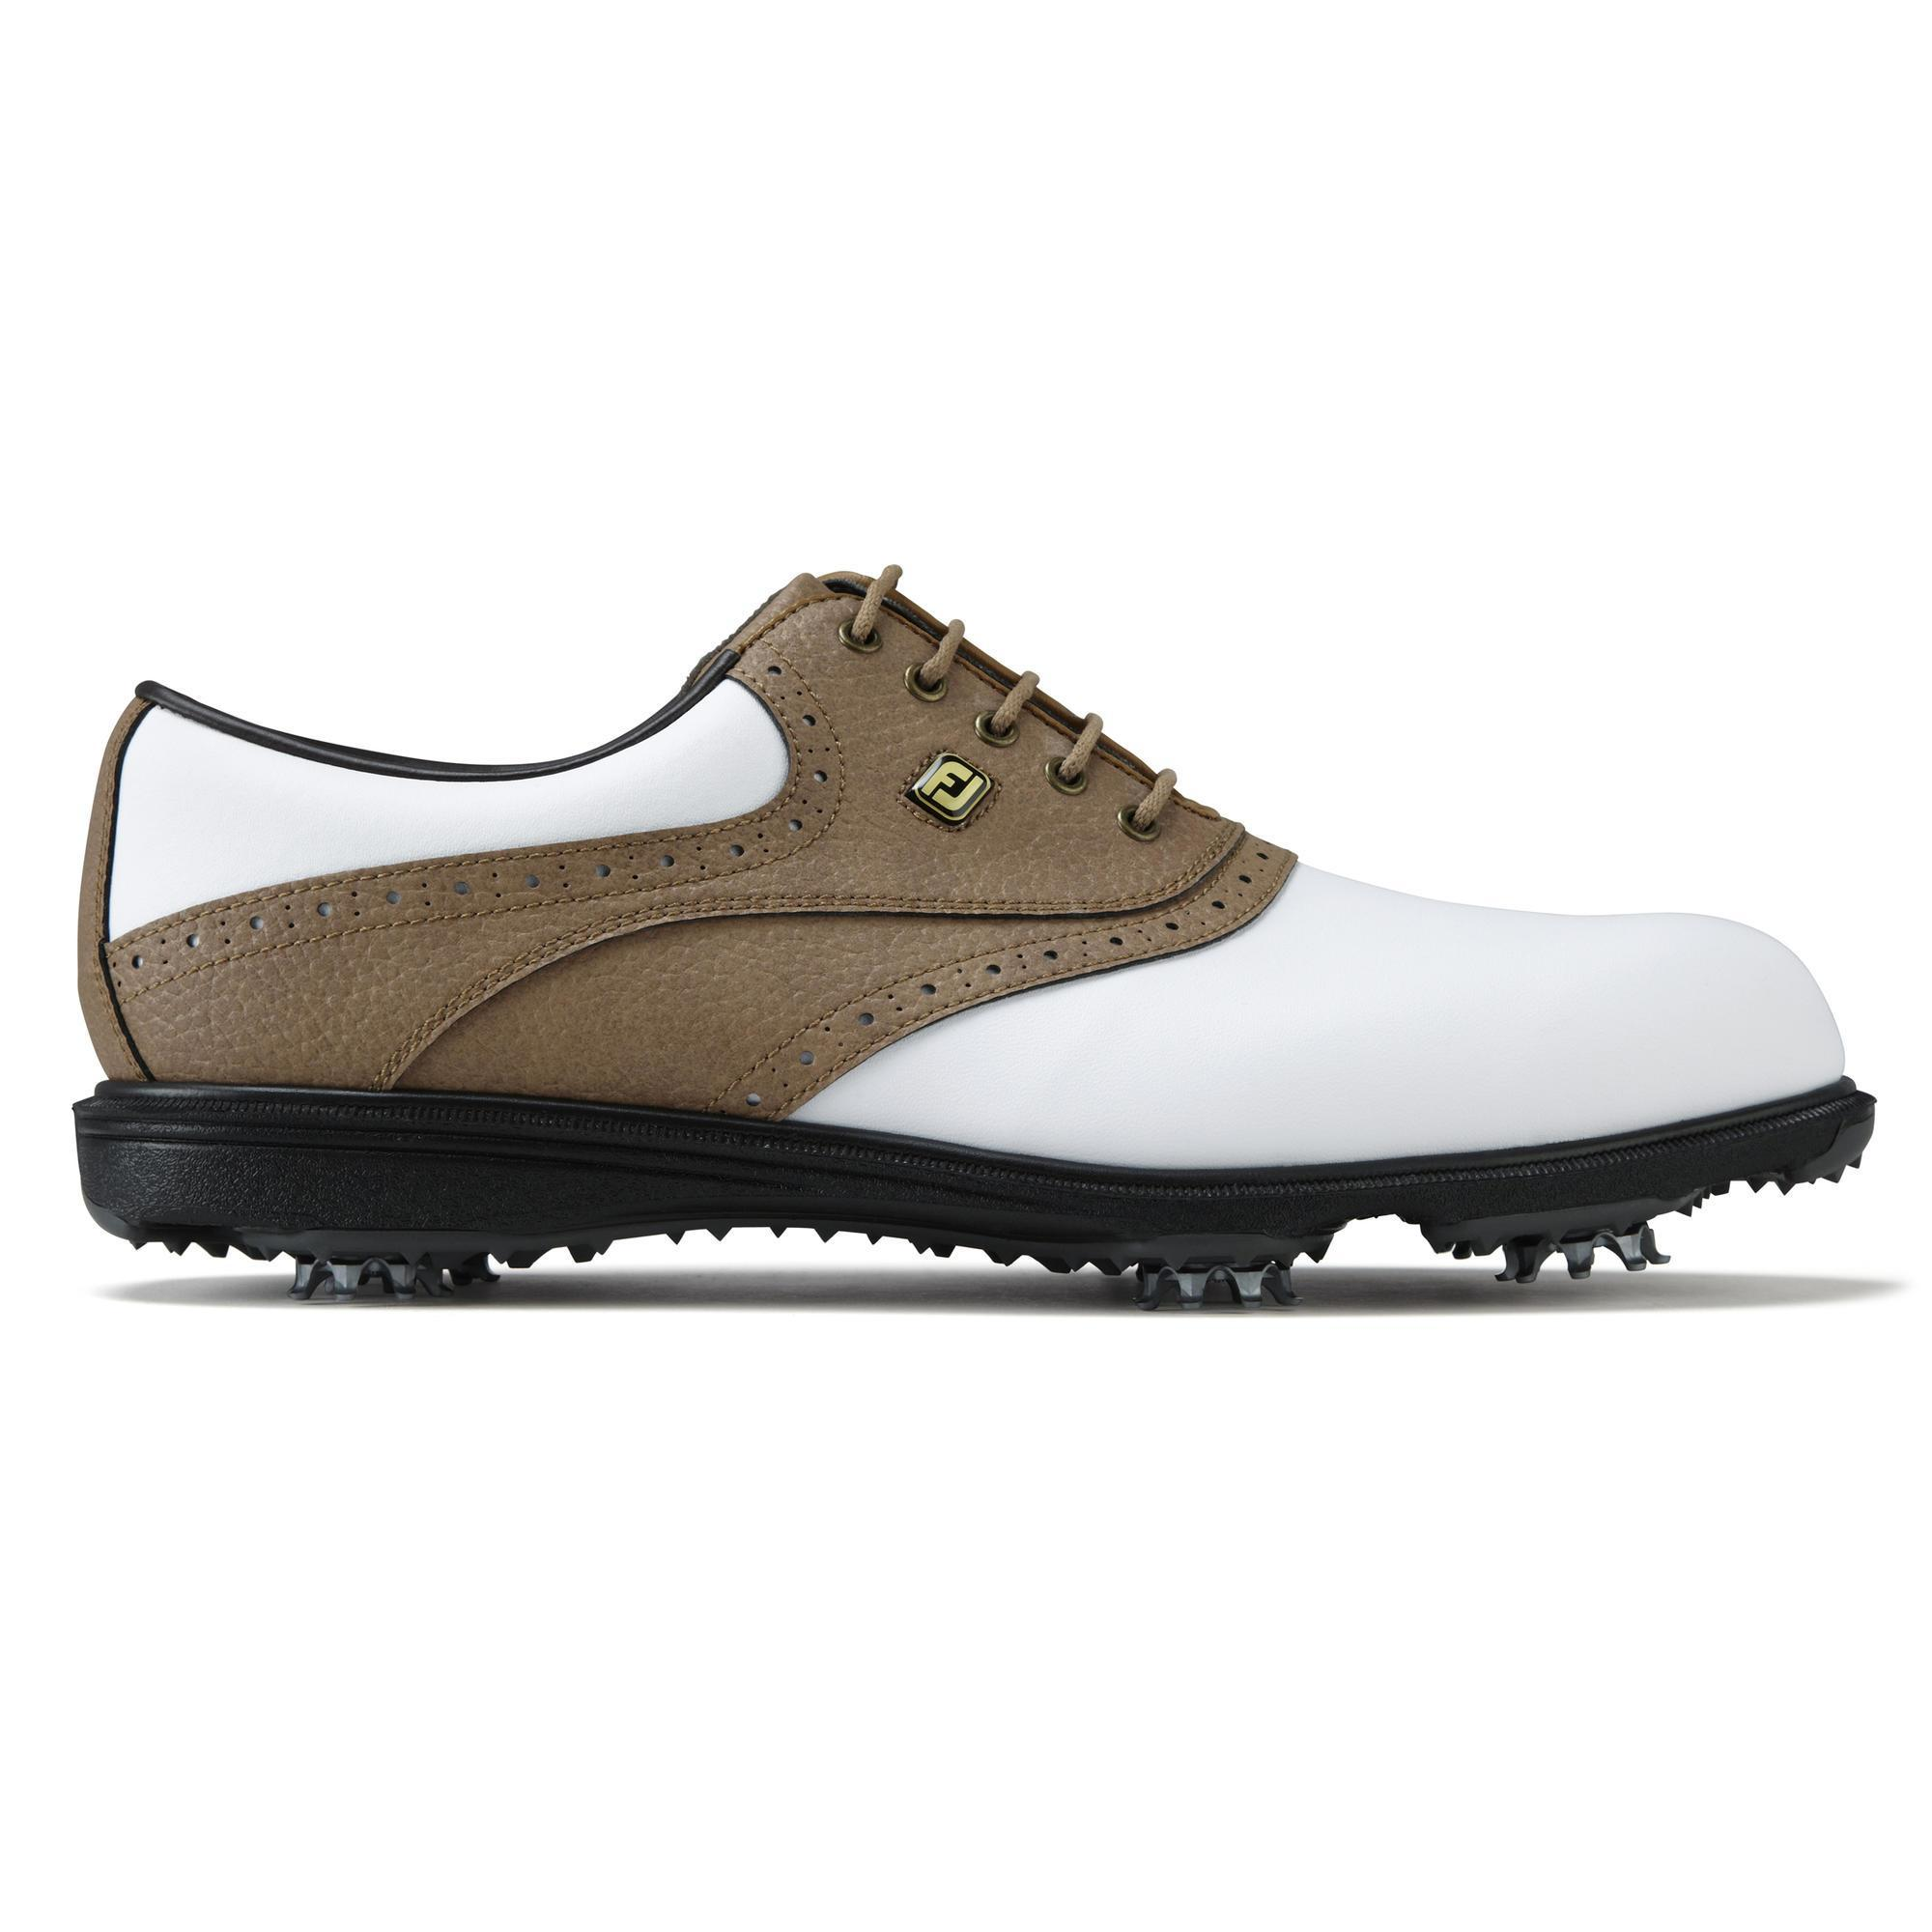 Brown Chaussures Footjoy Pour Les Hommes rfrWK